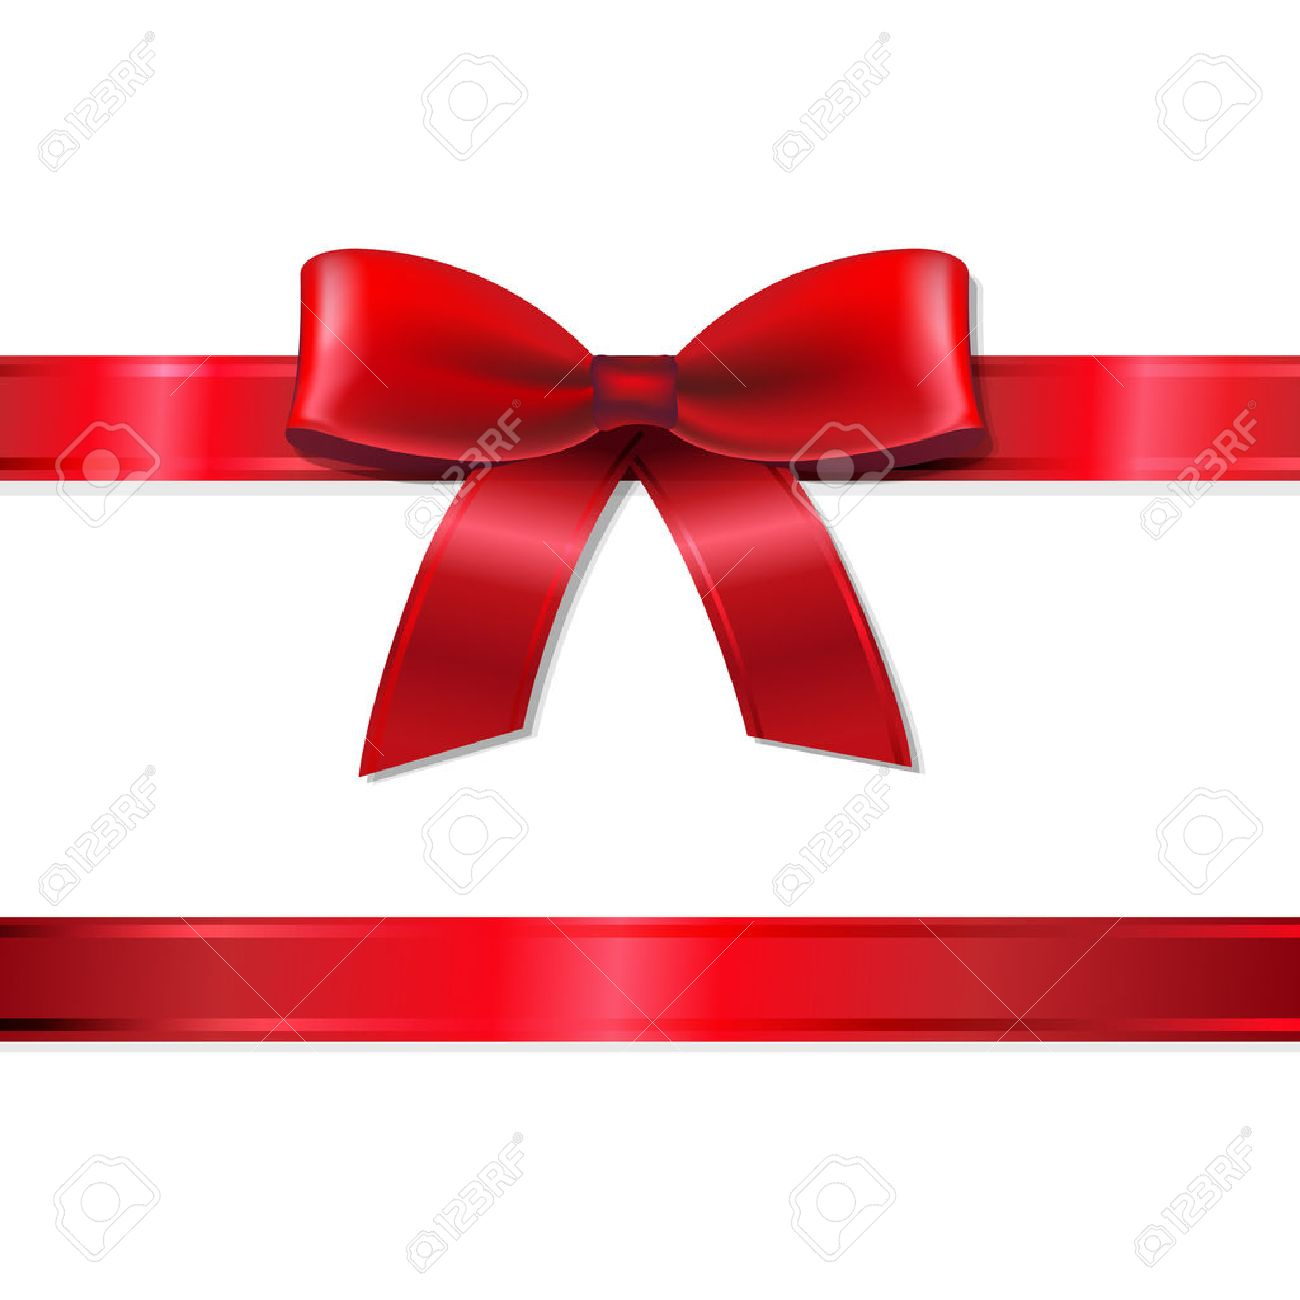 Red Ribbon And Bow With Gradient Mesh, Vector Illustration - 33225256